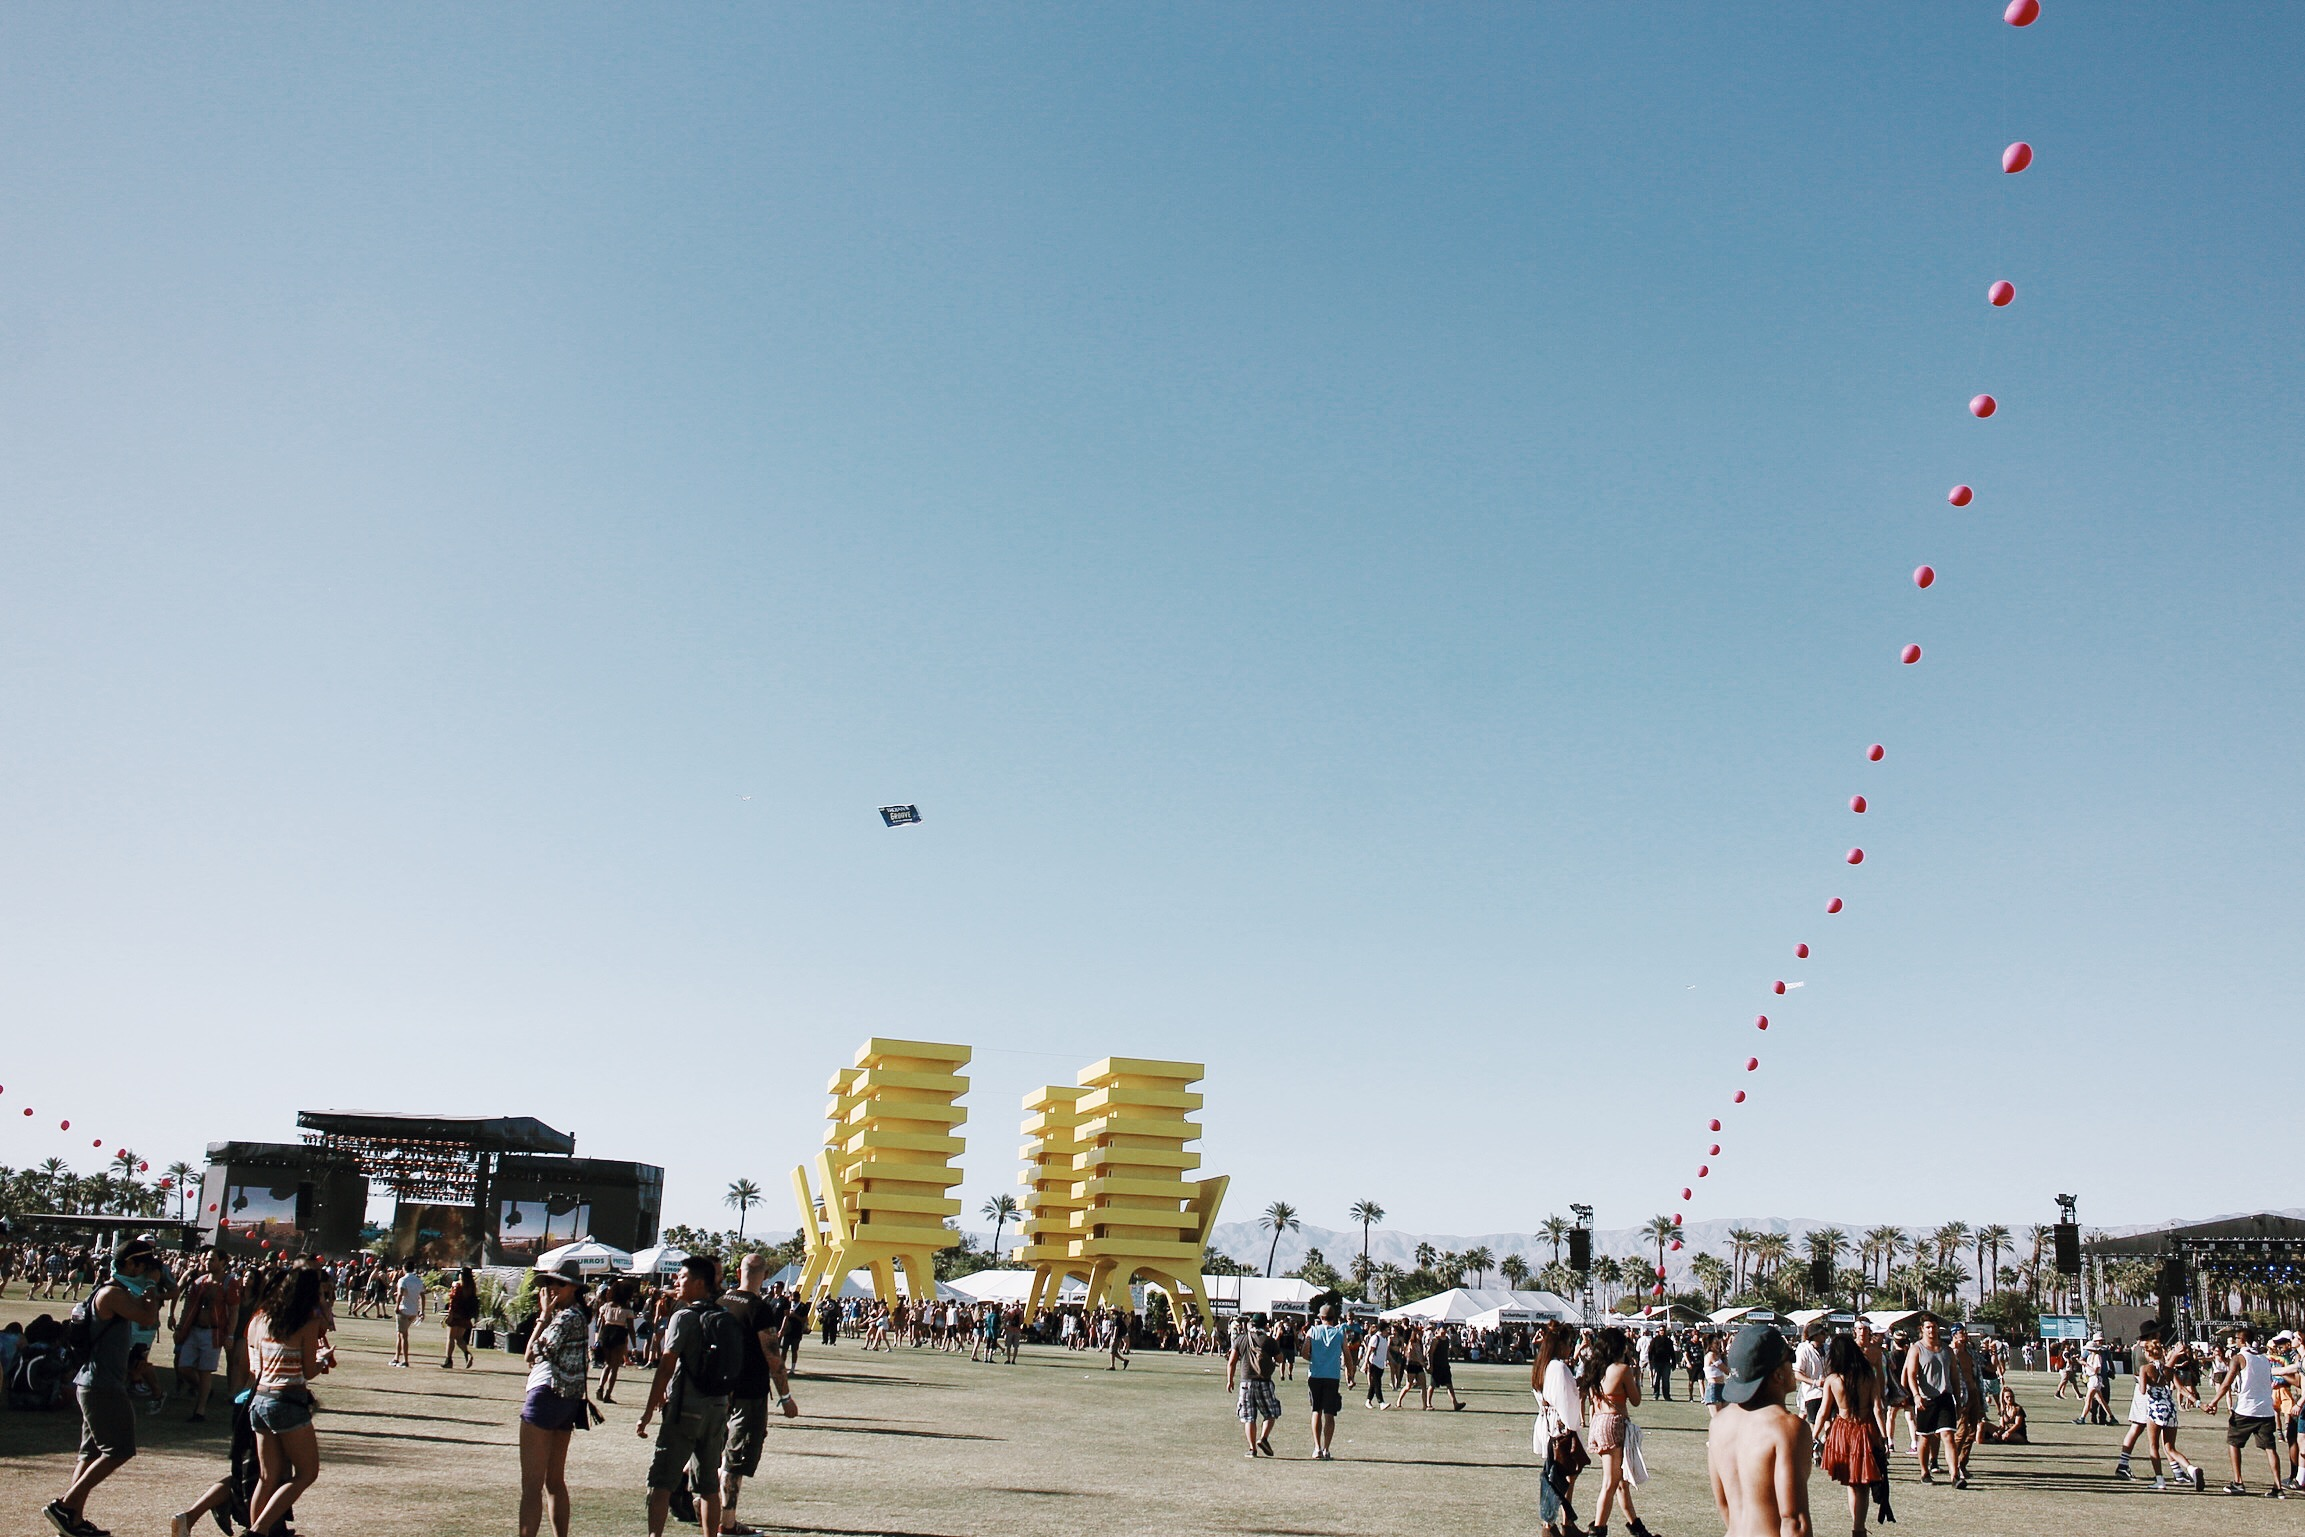 The festival grounds - To the left is the main stage, and the yellow things are art installations.